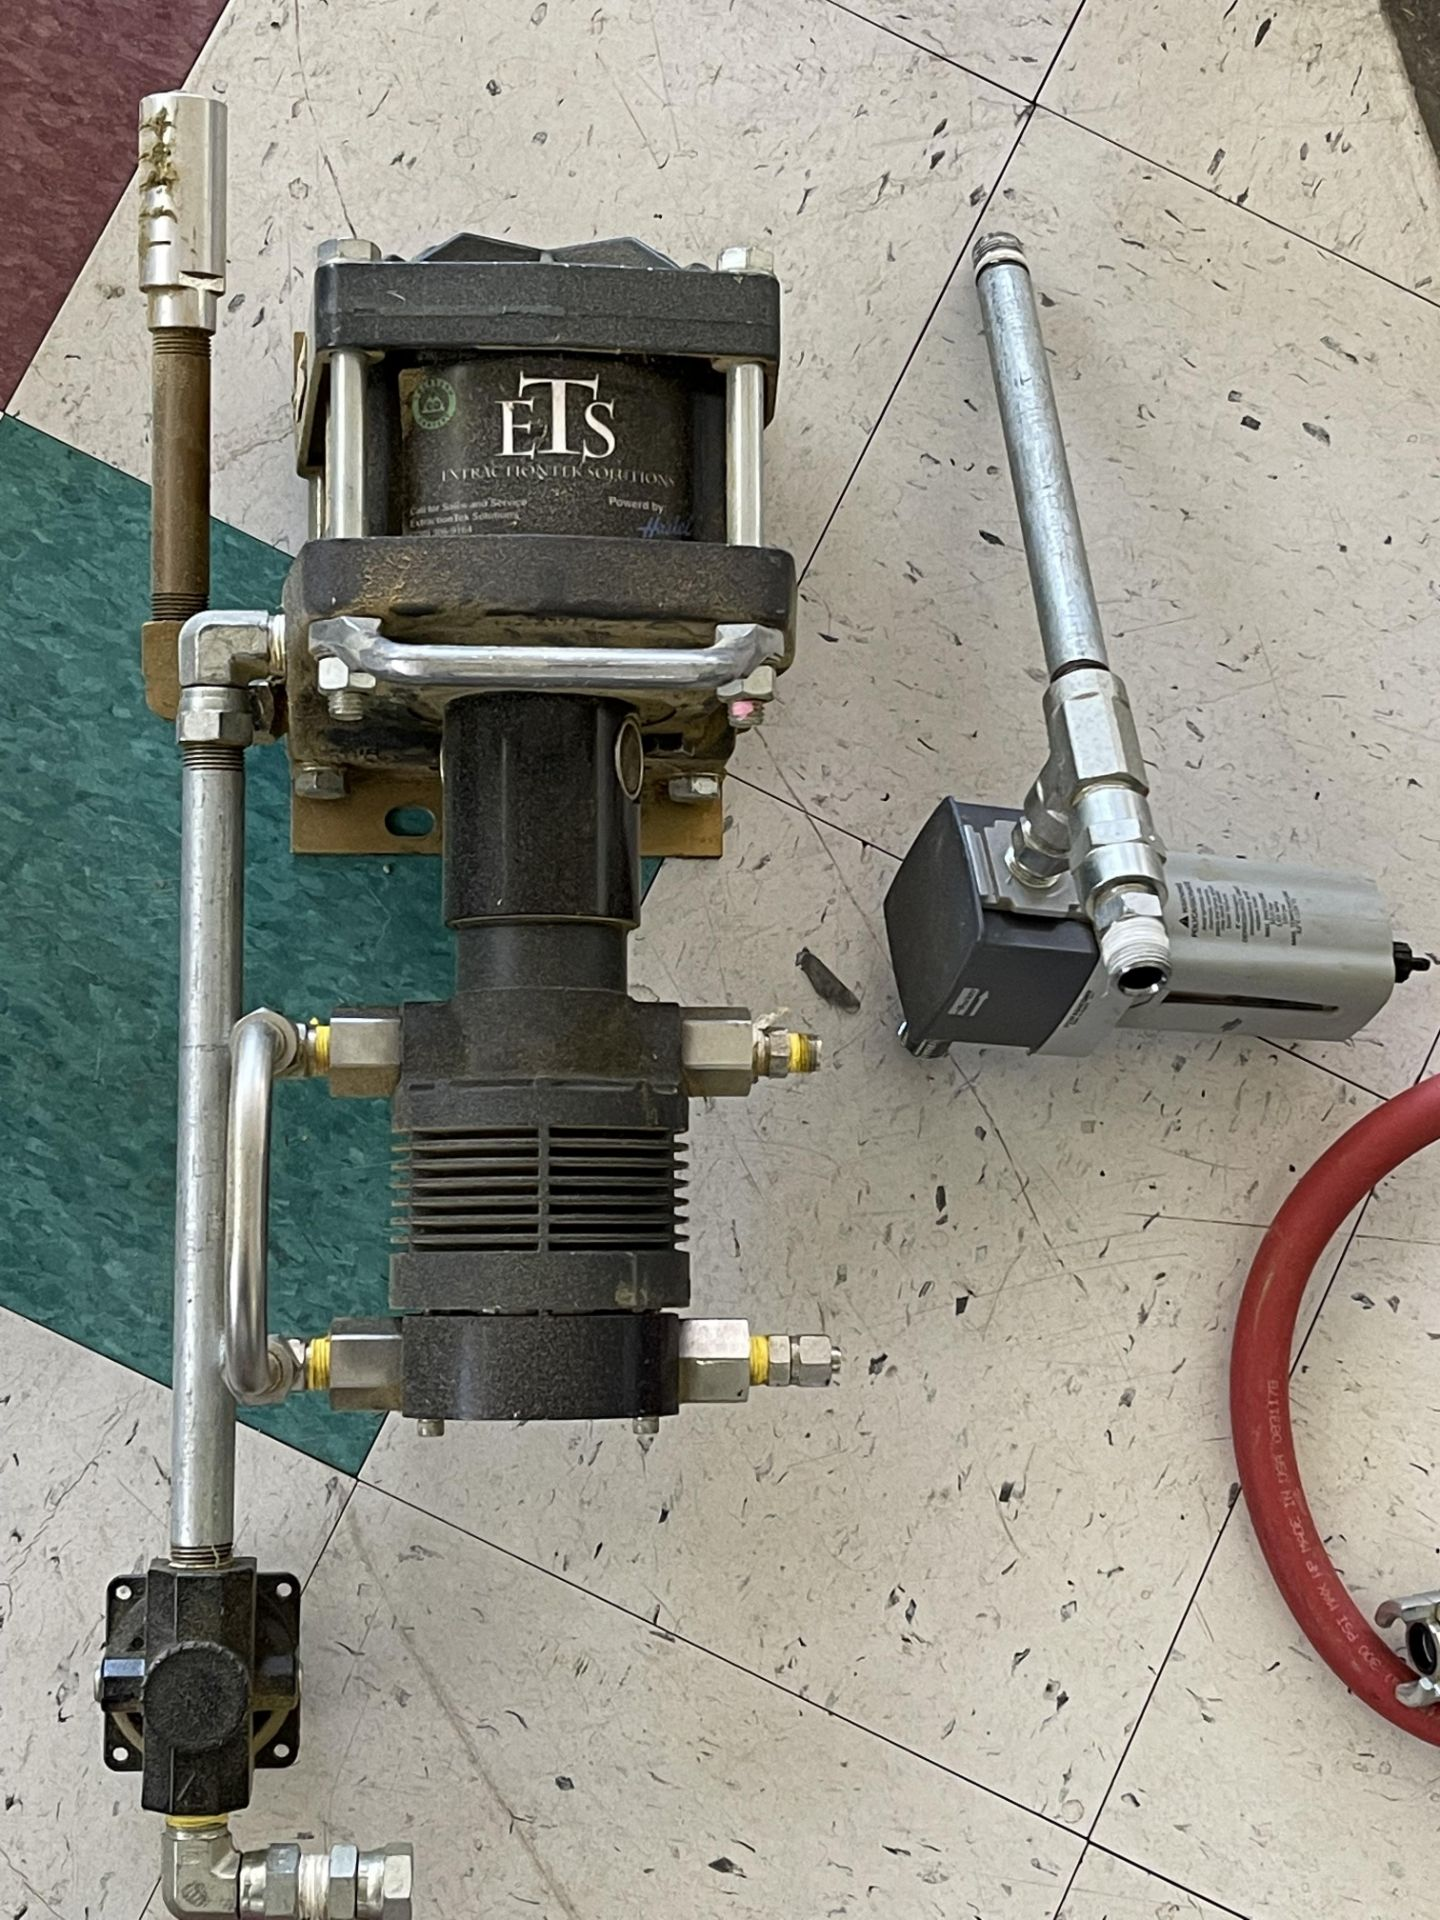 Used-Lot of (2) Haskel EXT420 Butane/Propane Extraction High Pressure Positive Displacement Pumps - Image 3 of 6